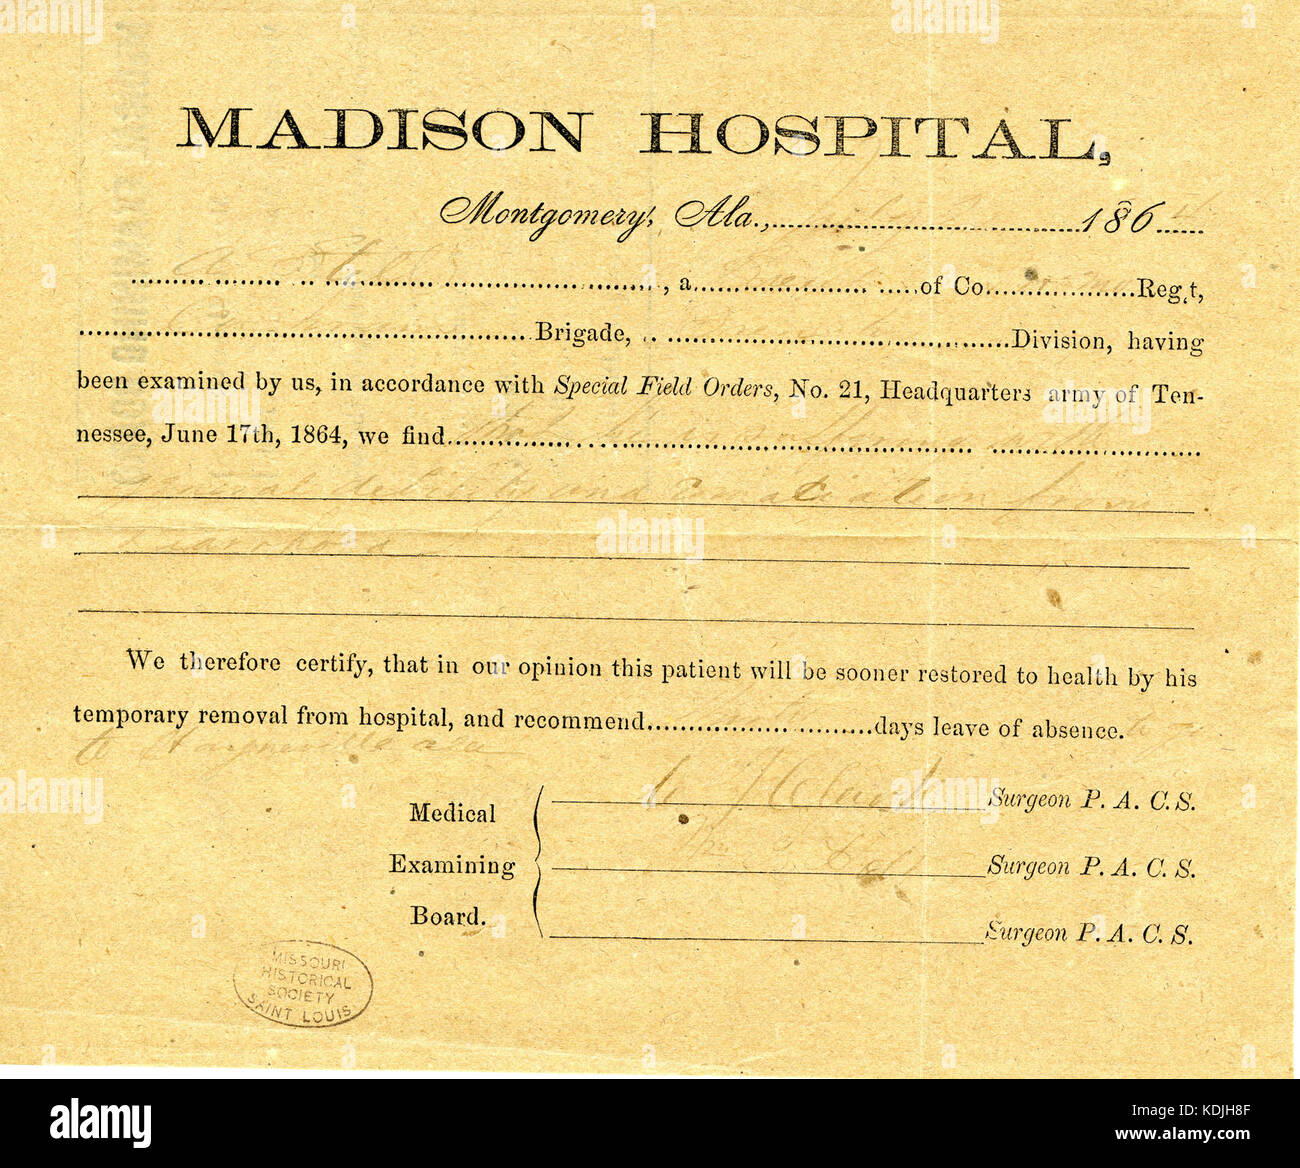 Medical certificate stock photos medical certificate stock medical certificate of a still july 1864 stock image 1betcityfo Gallery